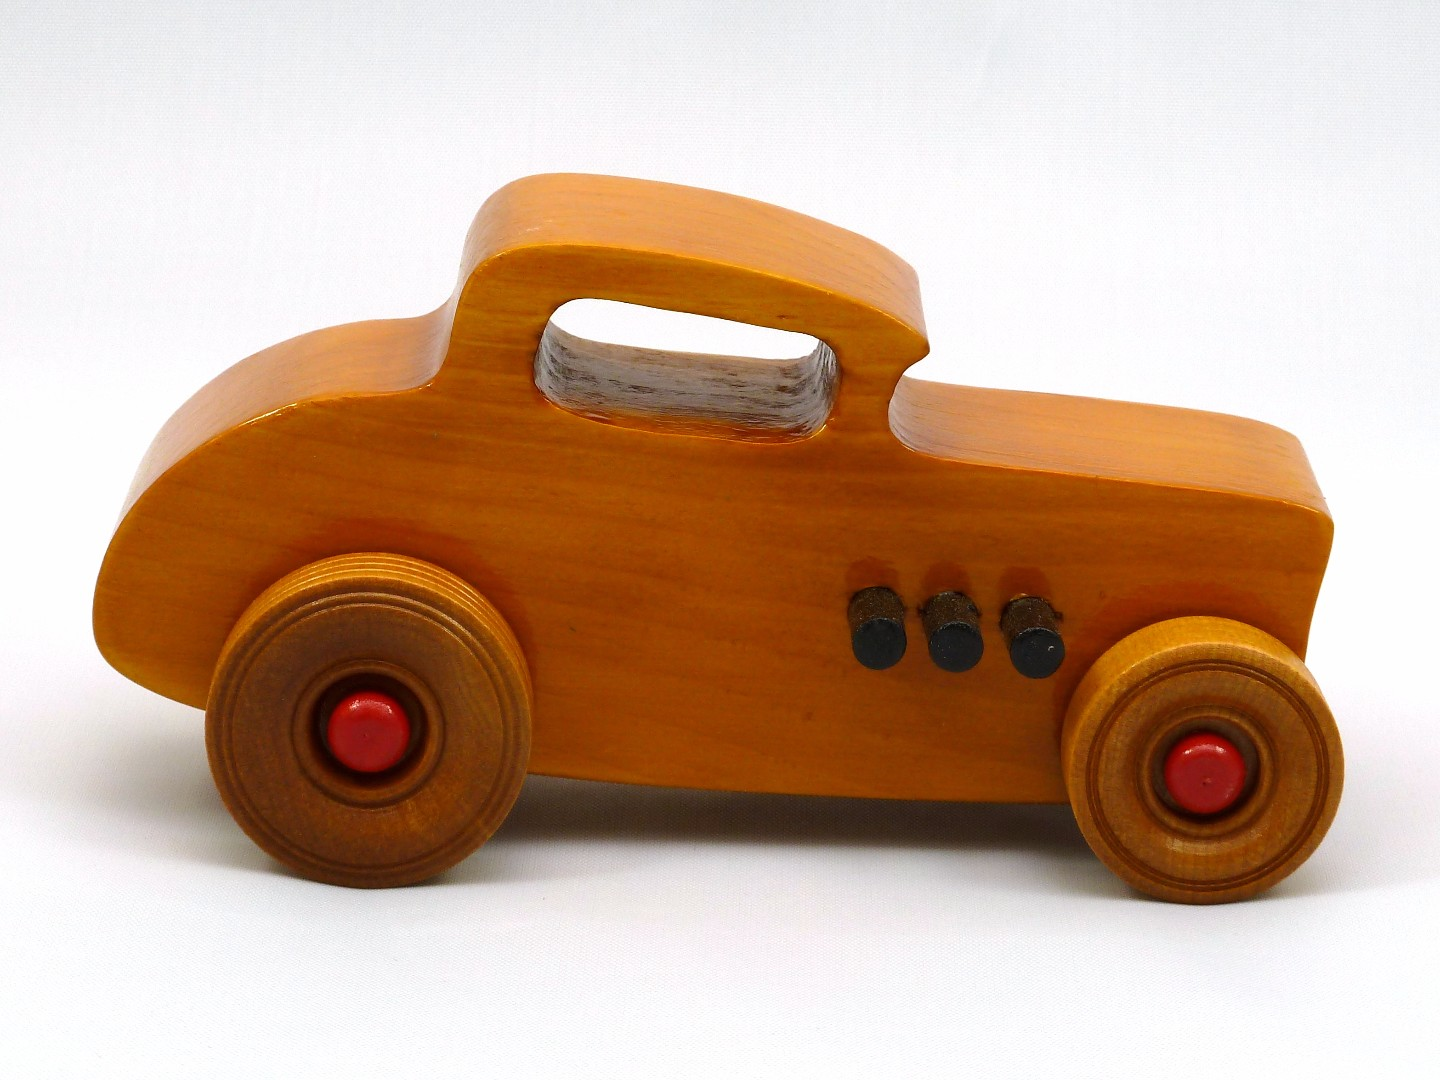 20170902-171839 Wooden Toy Car - Hot Rod Freaky Ford - 32 Deuce Coupe - Pine - Amber Shellac - Red.jpg